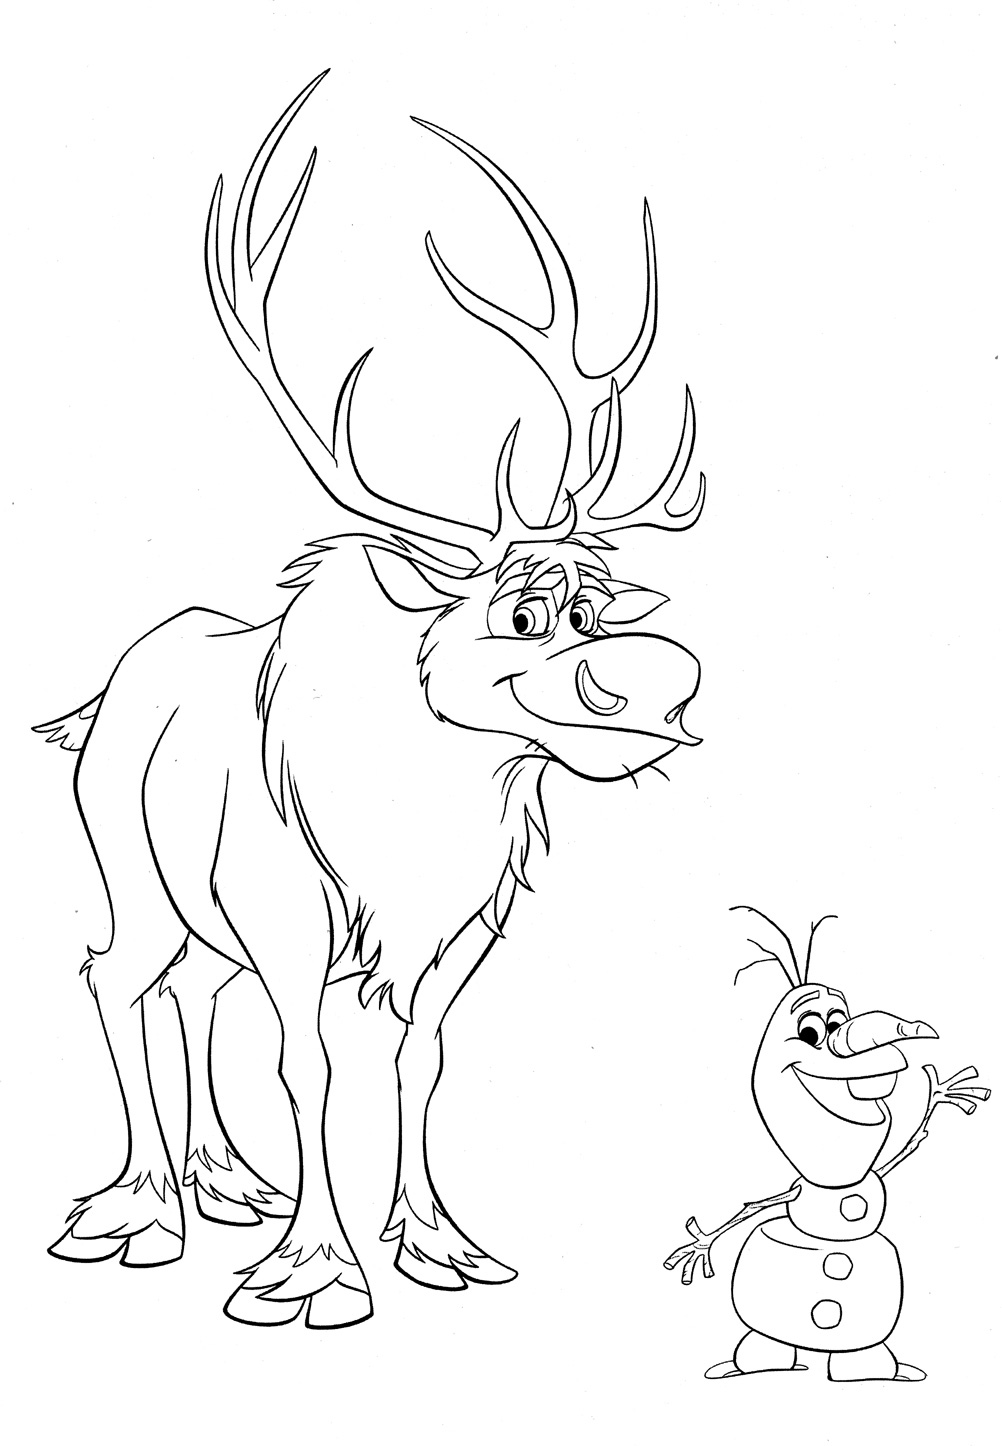 frozen sven coloring pages sven at his barn coloring page download print online pages sven coloring frozen